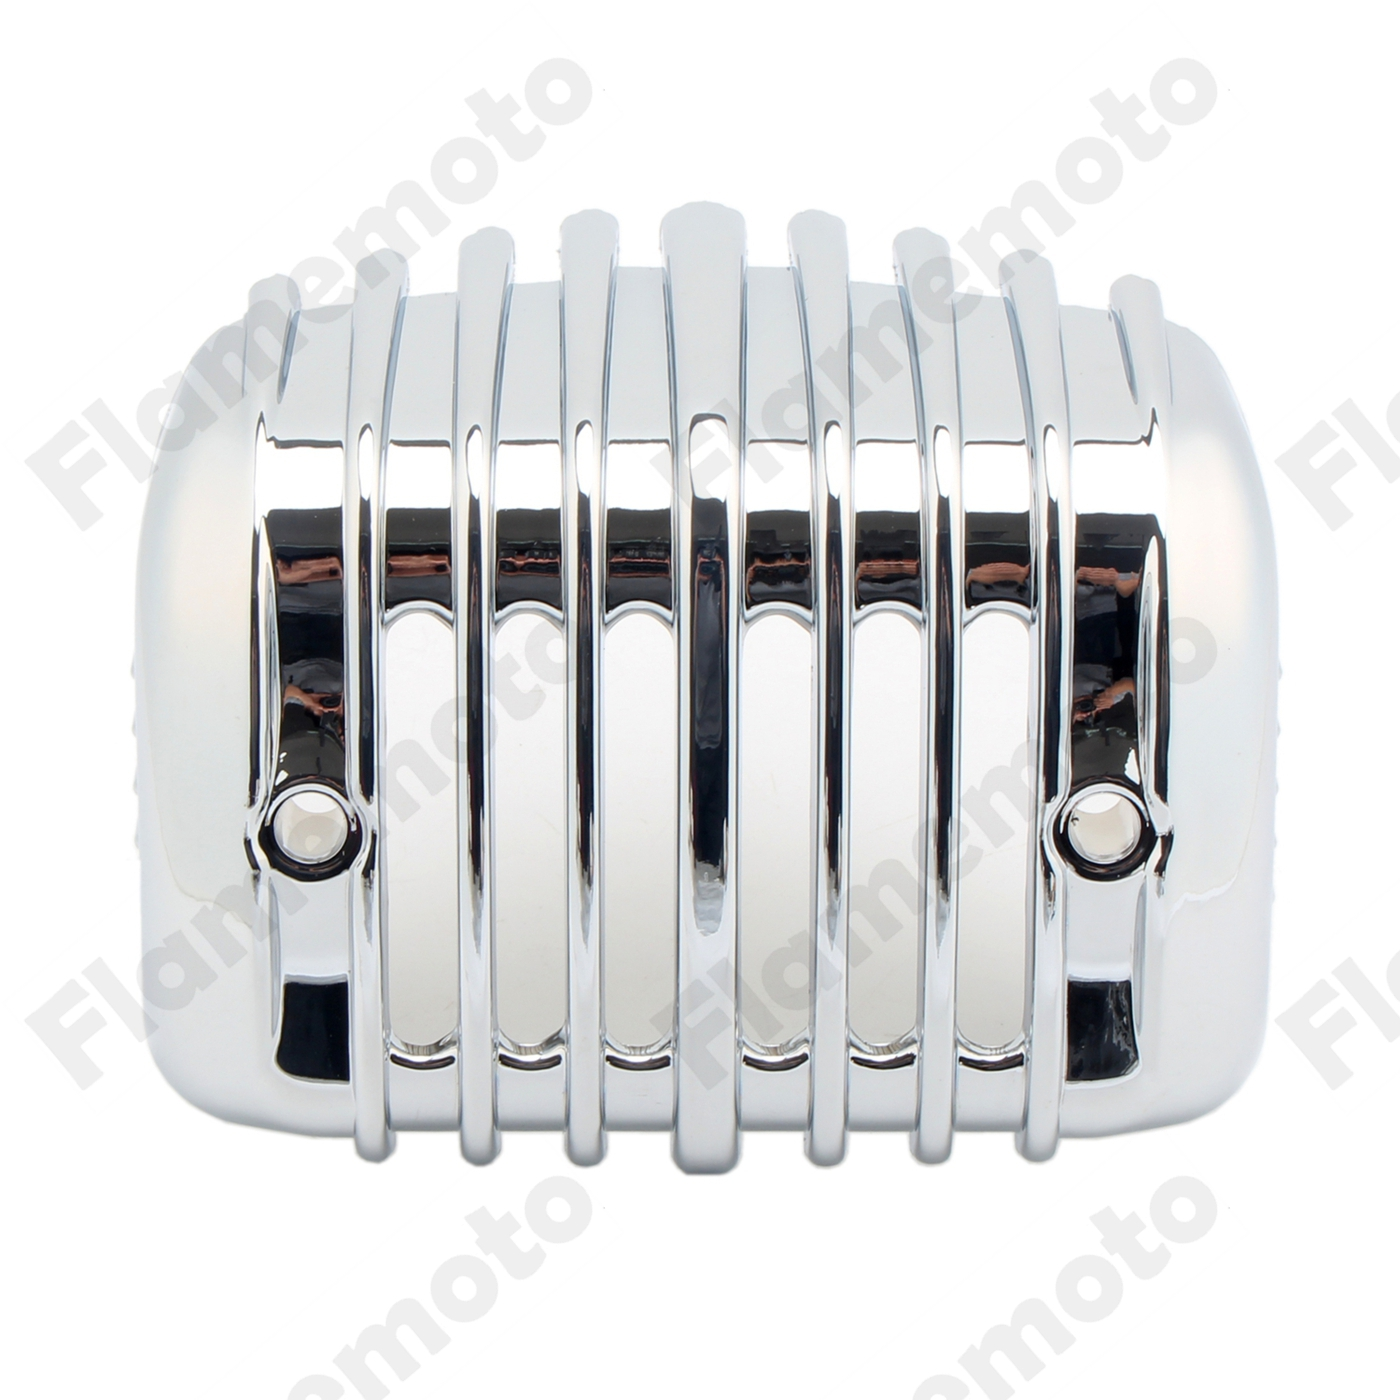 Motorcycle Parts Chrome Voltage Regulator Cover For Harley Heritage Softail Classic FLSTC 2001 2002 2003 2004 2005 2006-2017<br>